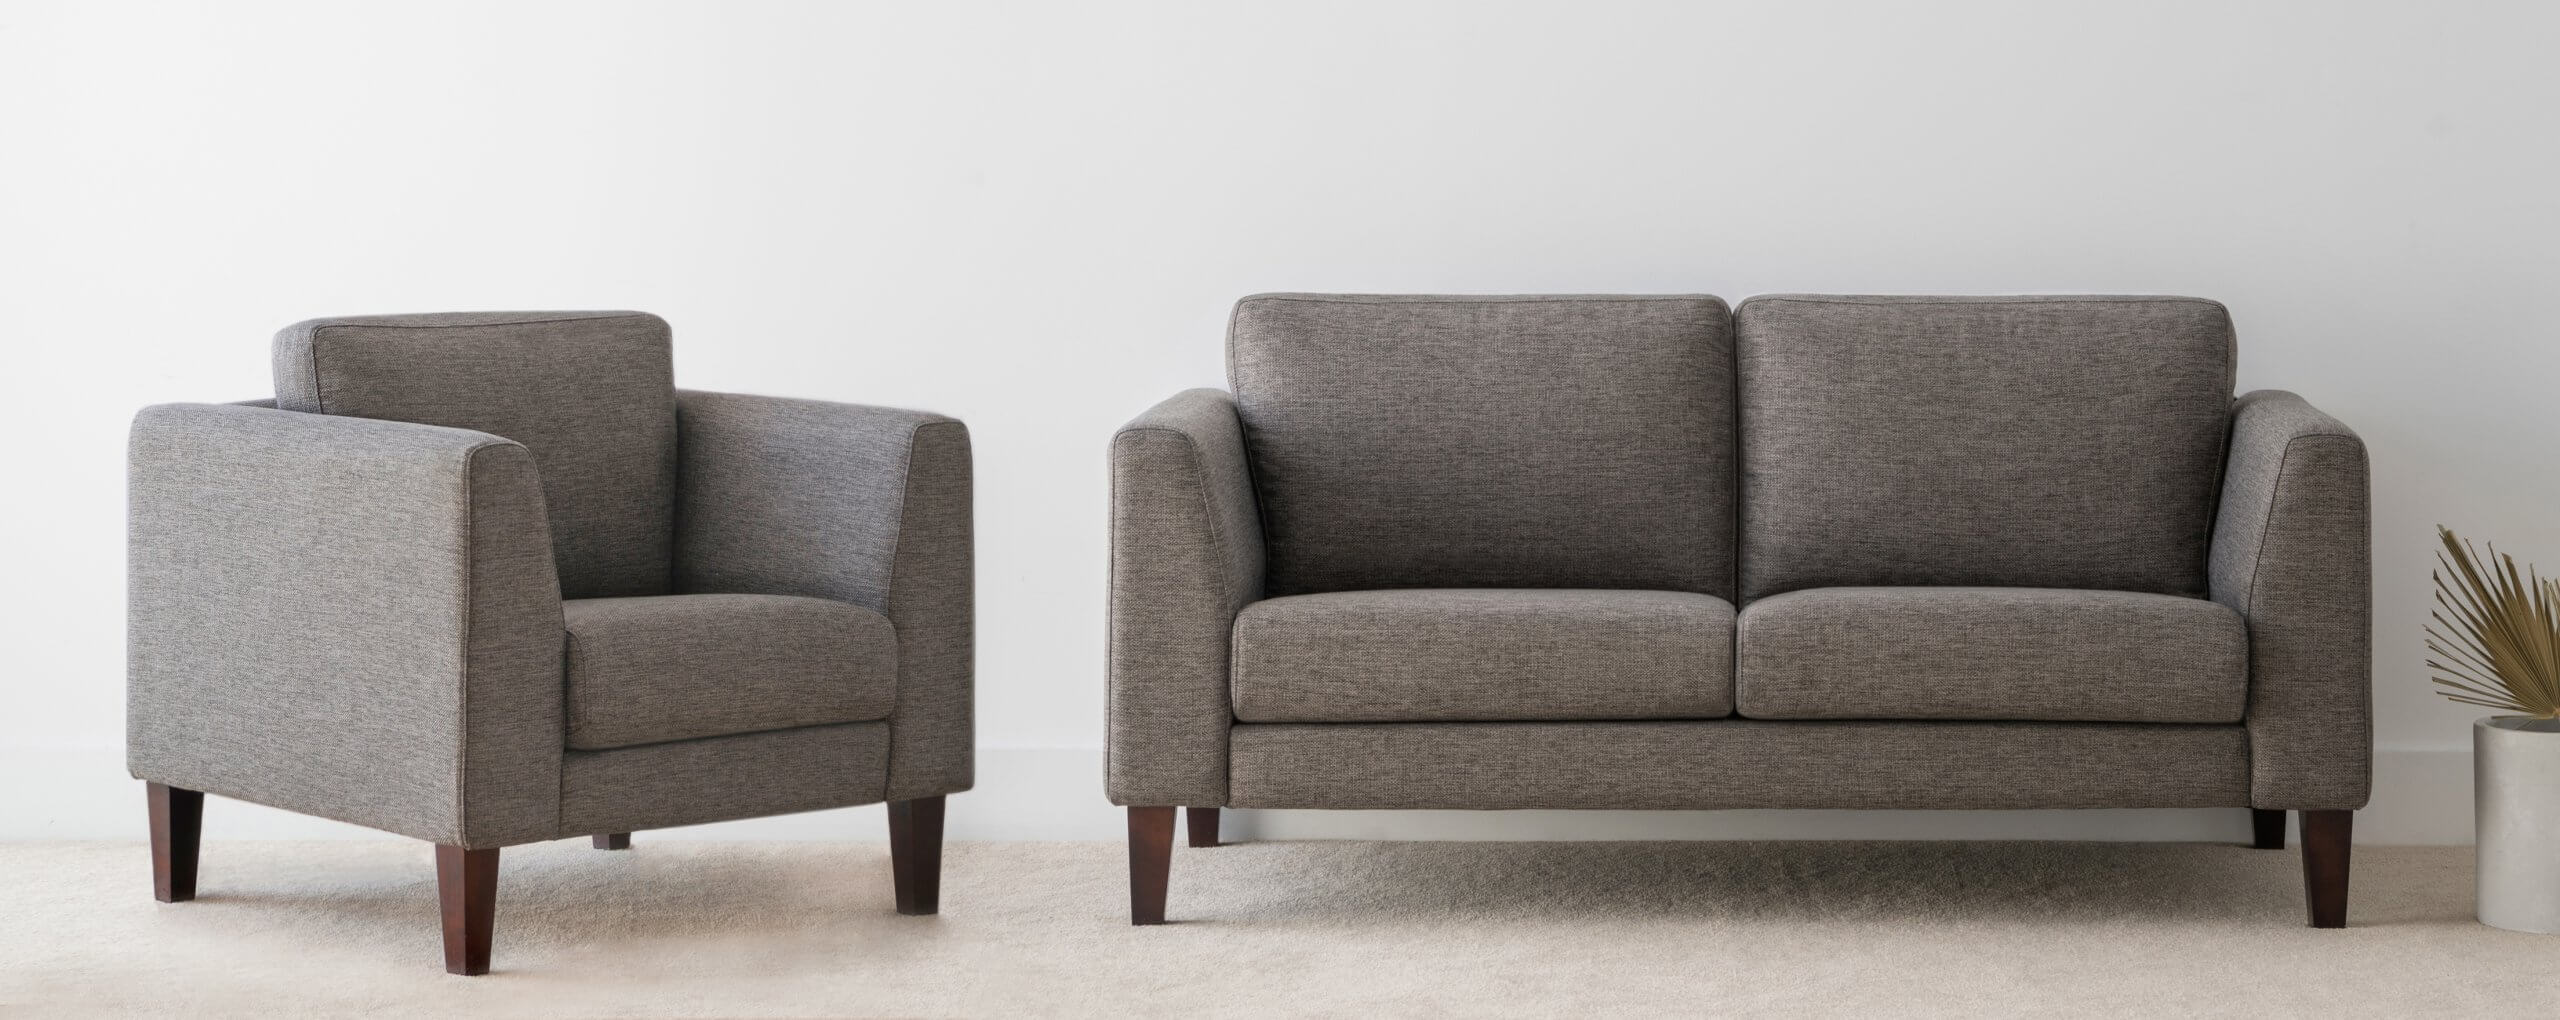 Fabric Lounge Suite locally made in Adelaide